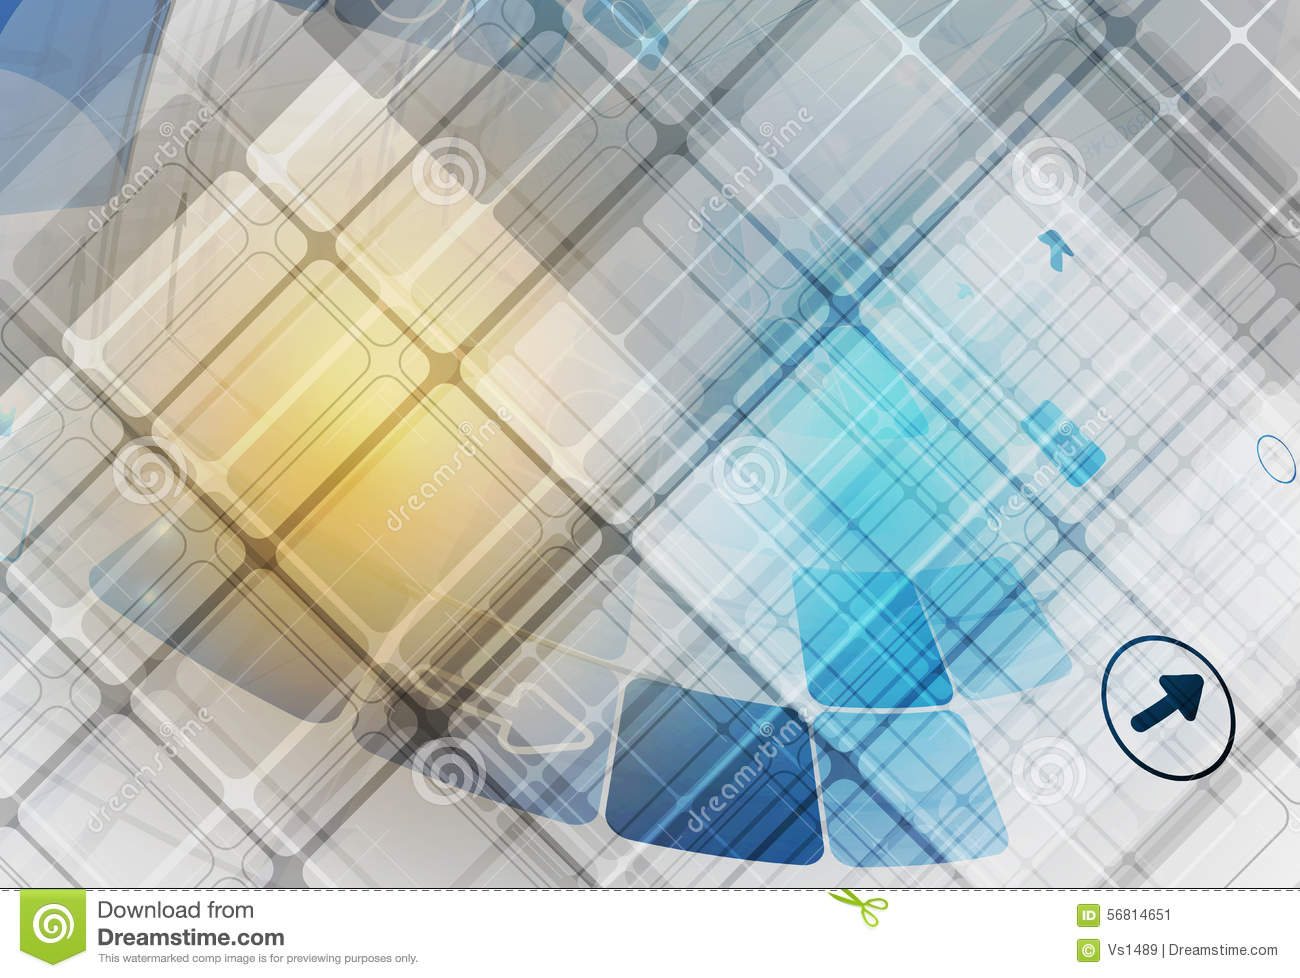 Stock Illustration Abstract Tech Background Futuristic Technology Interface Vecto Vector Illustration Many Geometric Shape Image69935306 in addition Stock Illustration Abstract Tech Background Futuristic Technology Interface Vecto Vector Illustration Many Geometric Shape Image62349079 additionally Stock Illustration Abstract Hud Interface Ui Technology Virtual Machine Running Template Background Eps Vector Image76149636 further Stock Illustration Abstract Tech Background Futuristic Technology Interface Vecto Vector Illustration Many Geometric Shape Image62349068 further Stock Illustration Abstract Tech Background Futuristic Technology Interface Vecto Vector Illustration Many Geometric Shape Image62106661. on stock illustration abstract tech background futuristic technology interface vecto